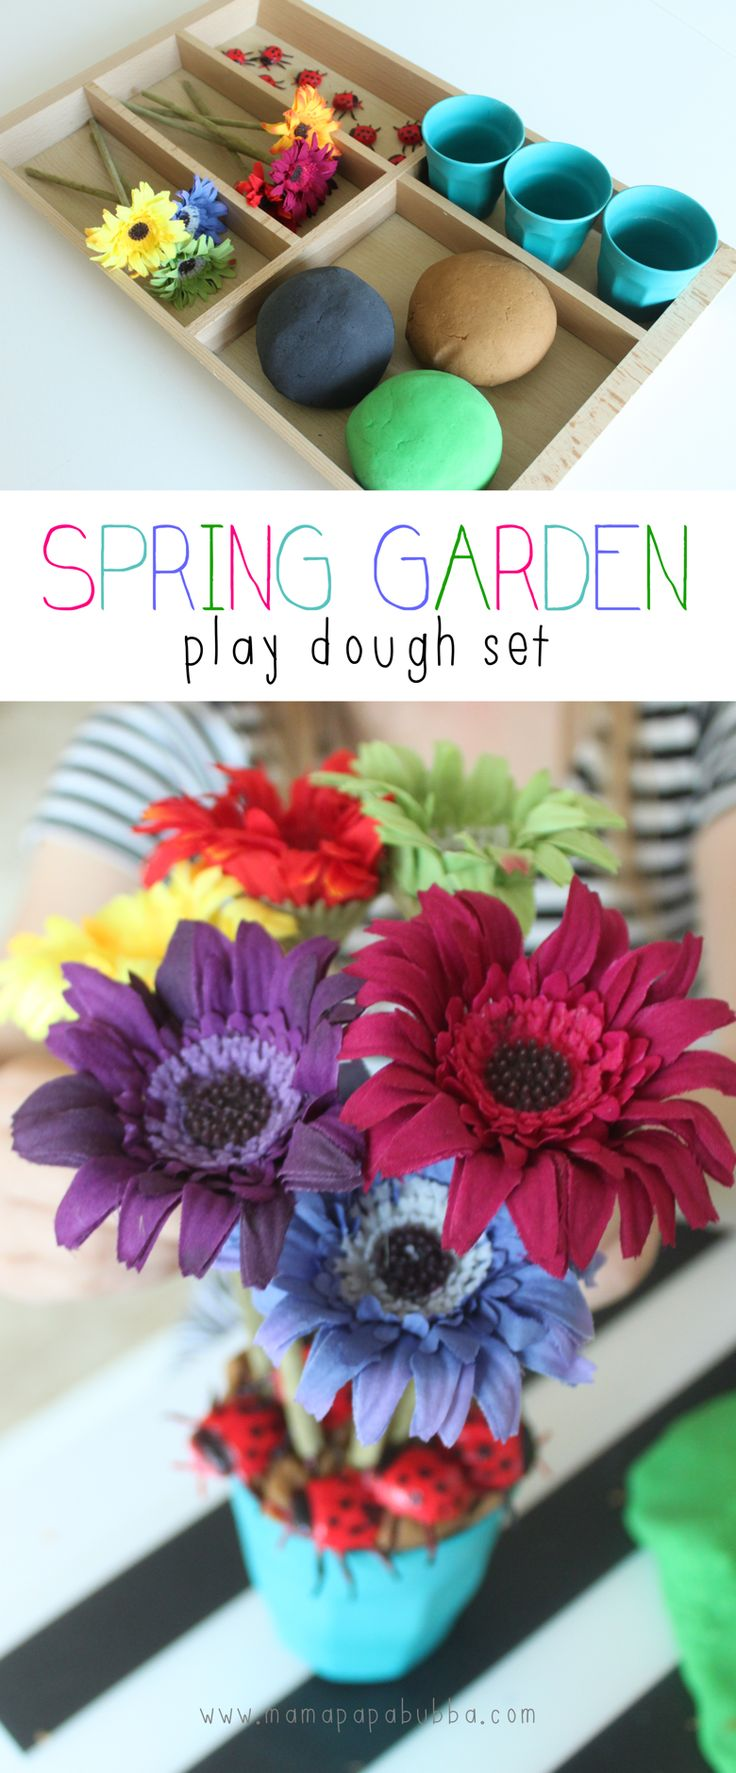 Spring on the horizon means that it was finally time for us to say au revoir to the Christmas and winter play dough kits we've had around for months… New season, new play dough sets – that's what they say, right?? ☺  While we've made a version of this spring garden play dough set…